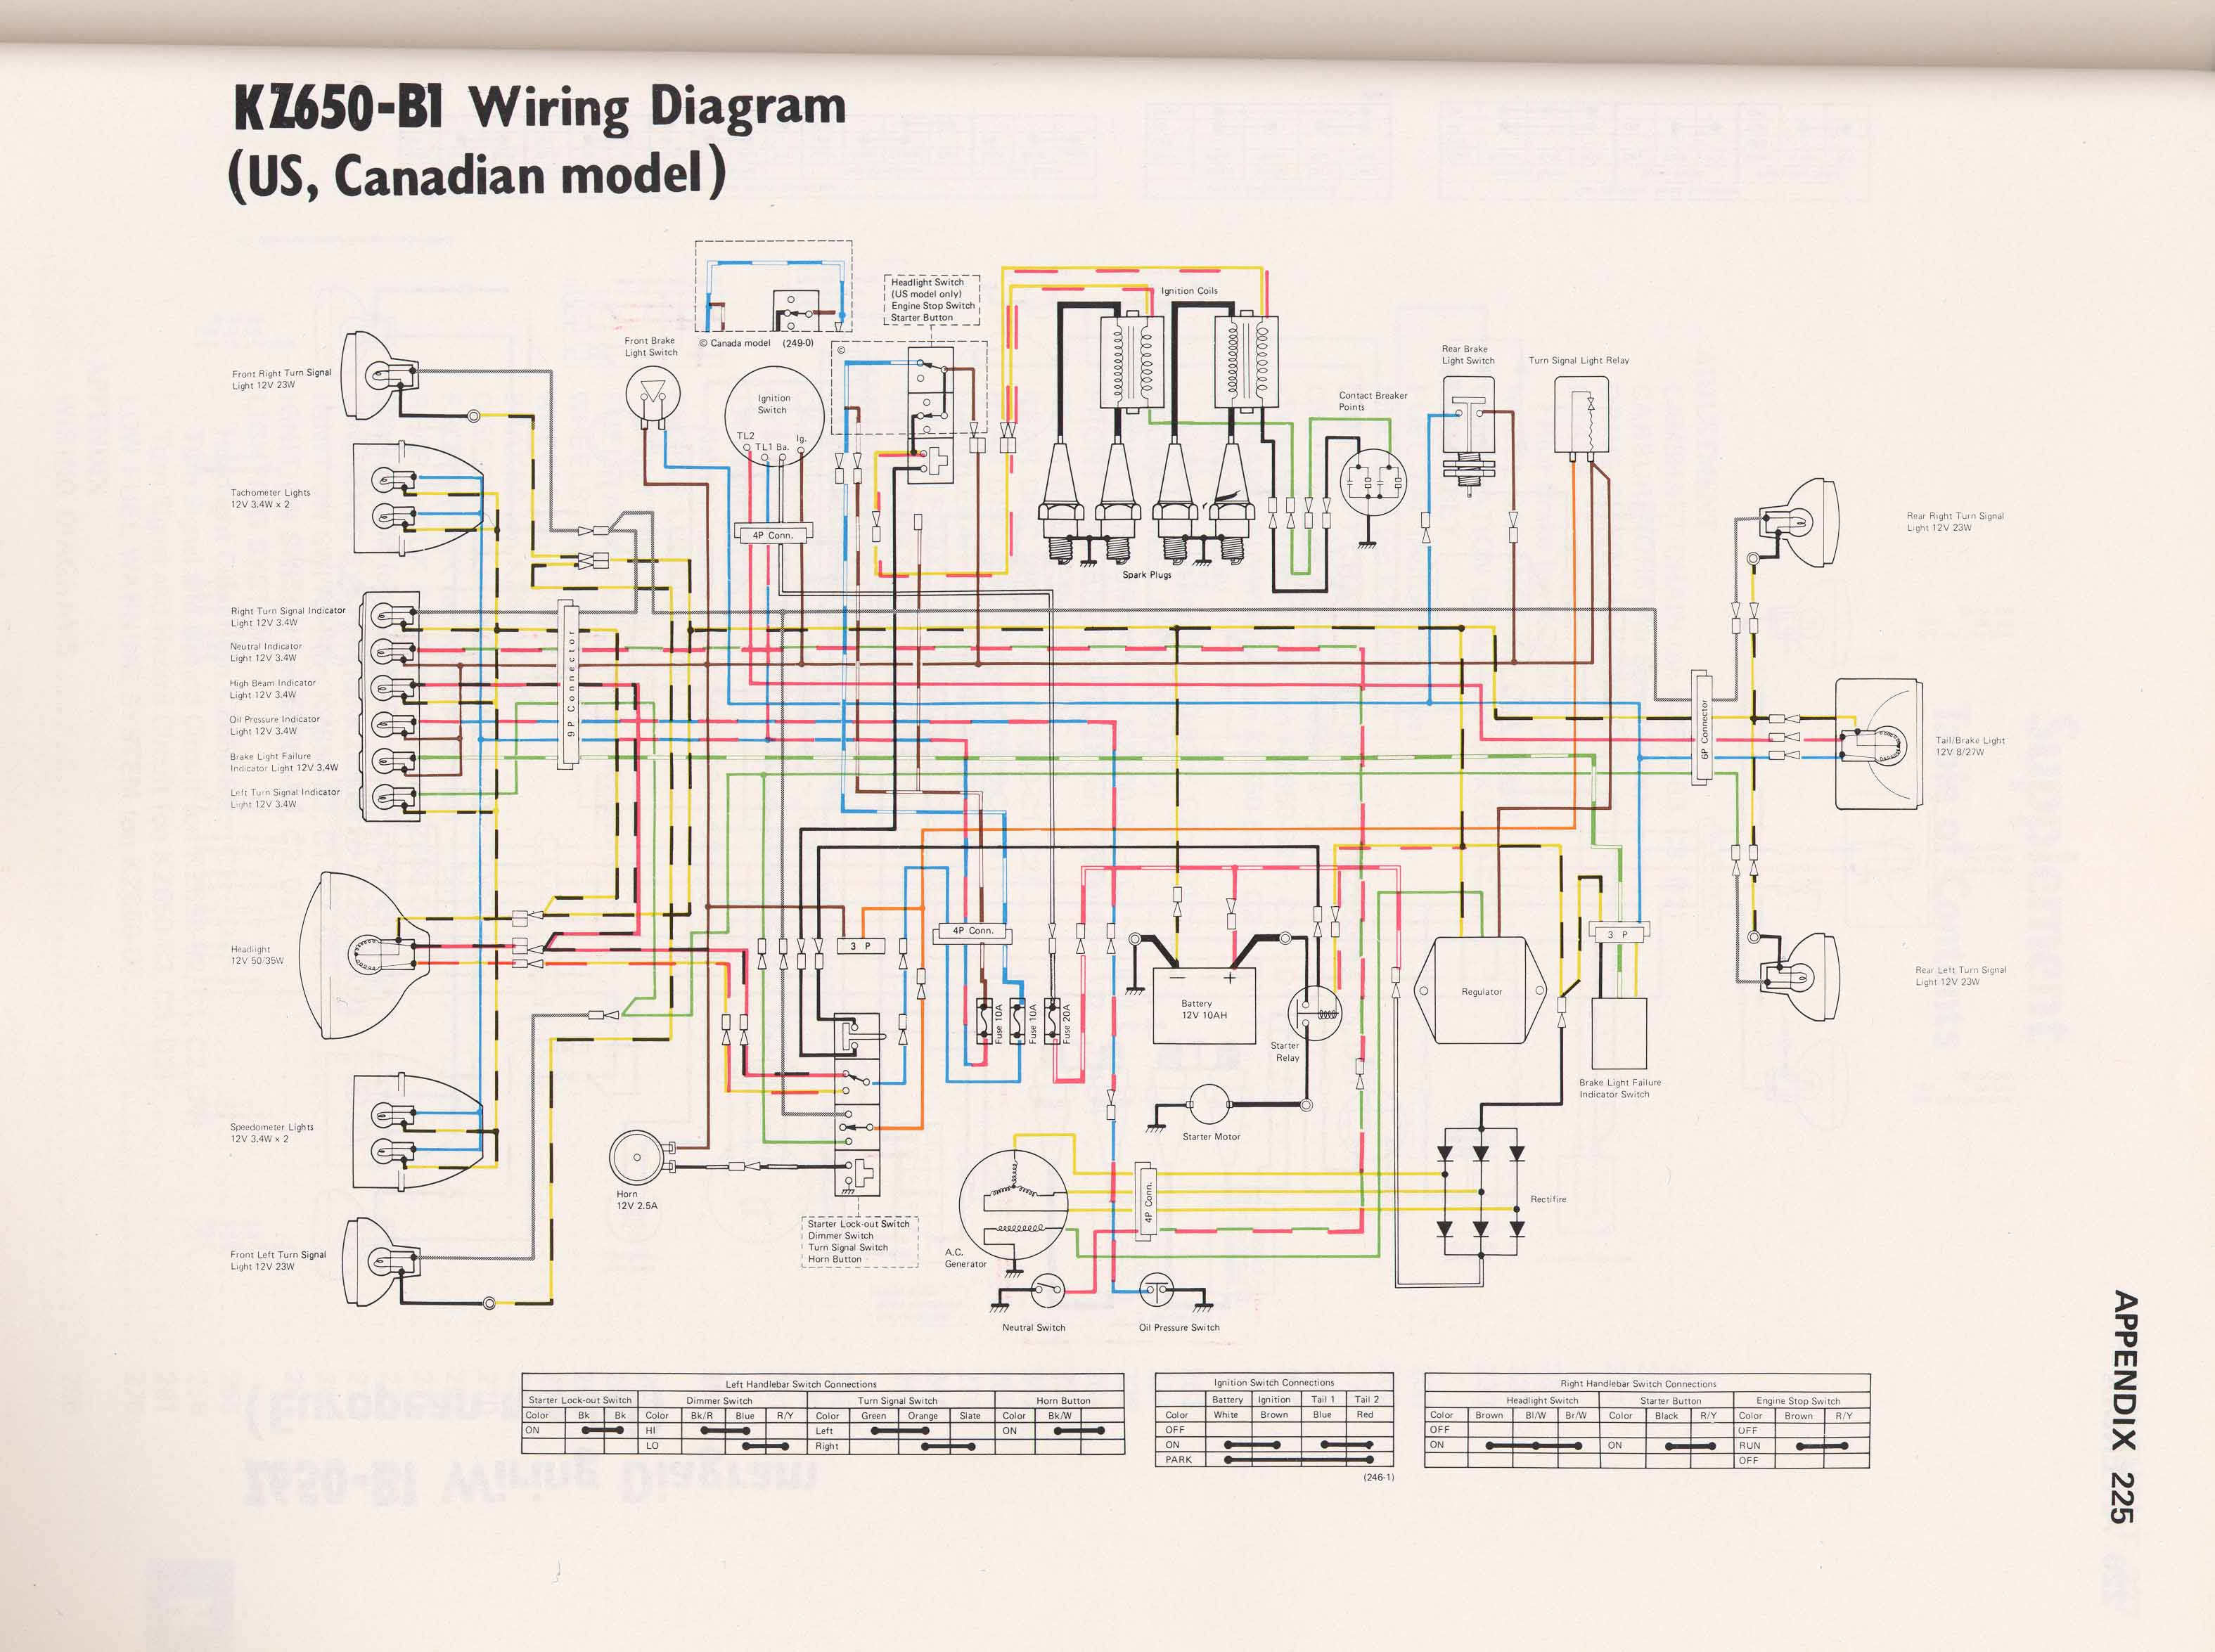 KZ650 B1 ignition wiring diagram starter motor wiring diagram \u2022 wiring Ski-Doo Rev Wire Diagram at reclaimingppi.co